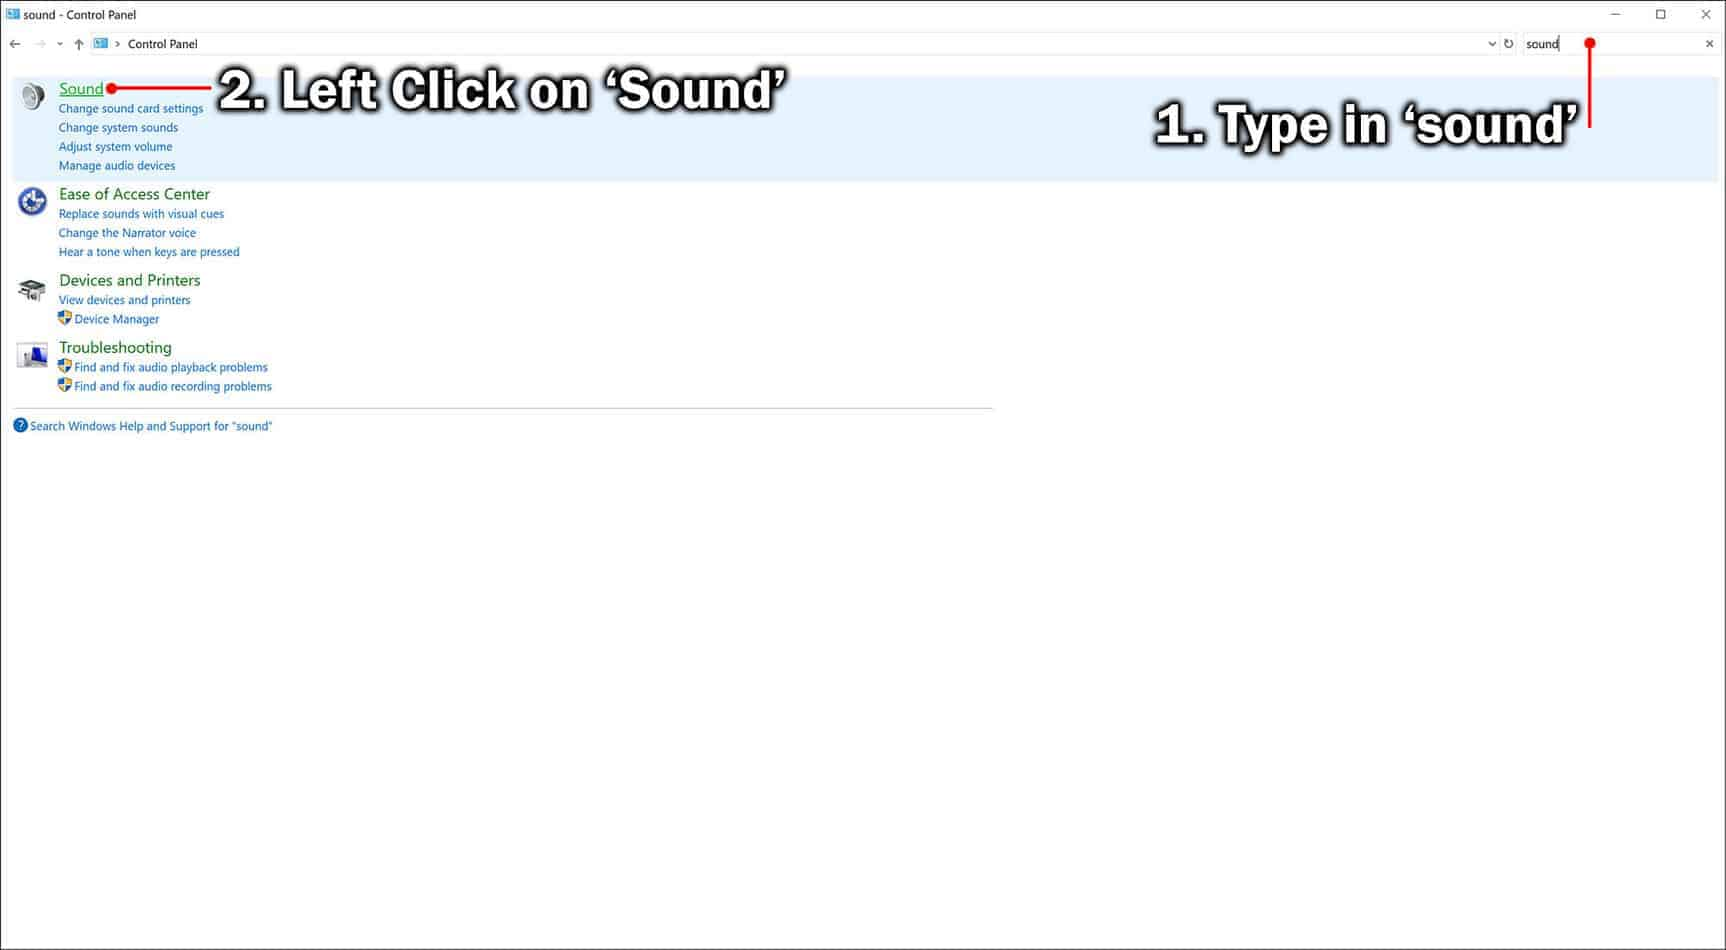 type in sound and click on sound